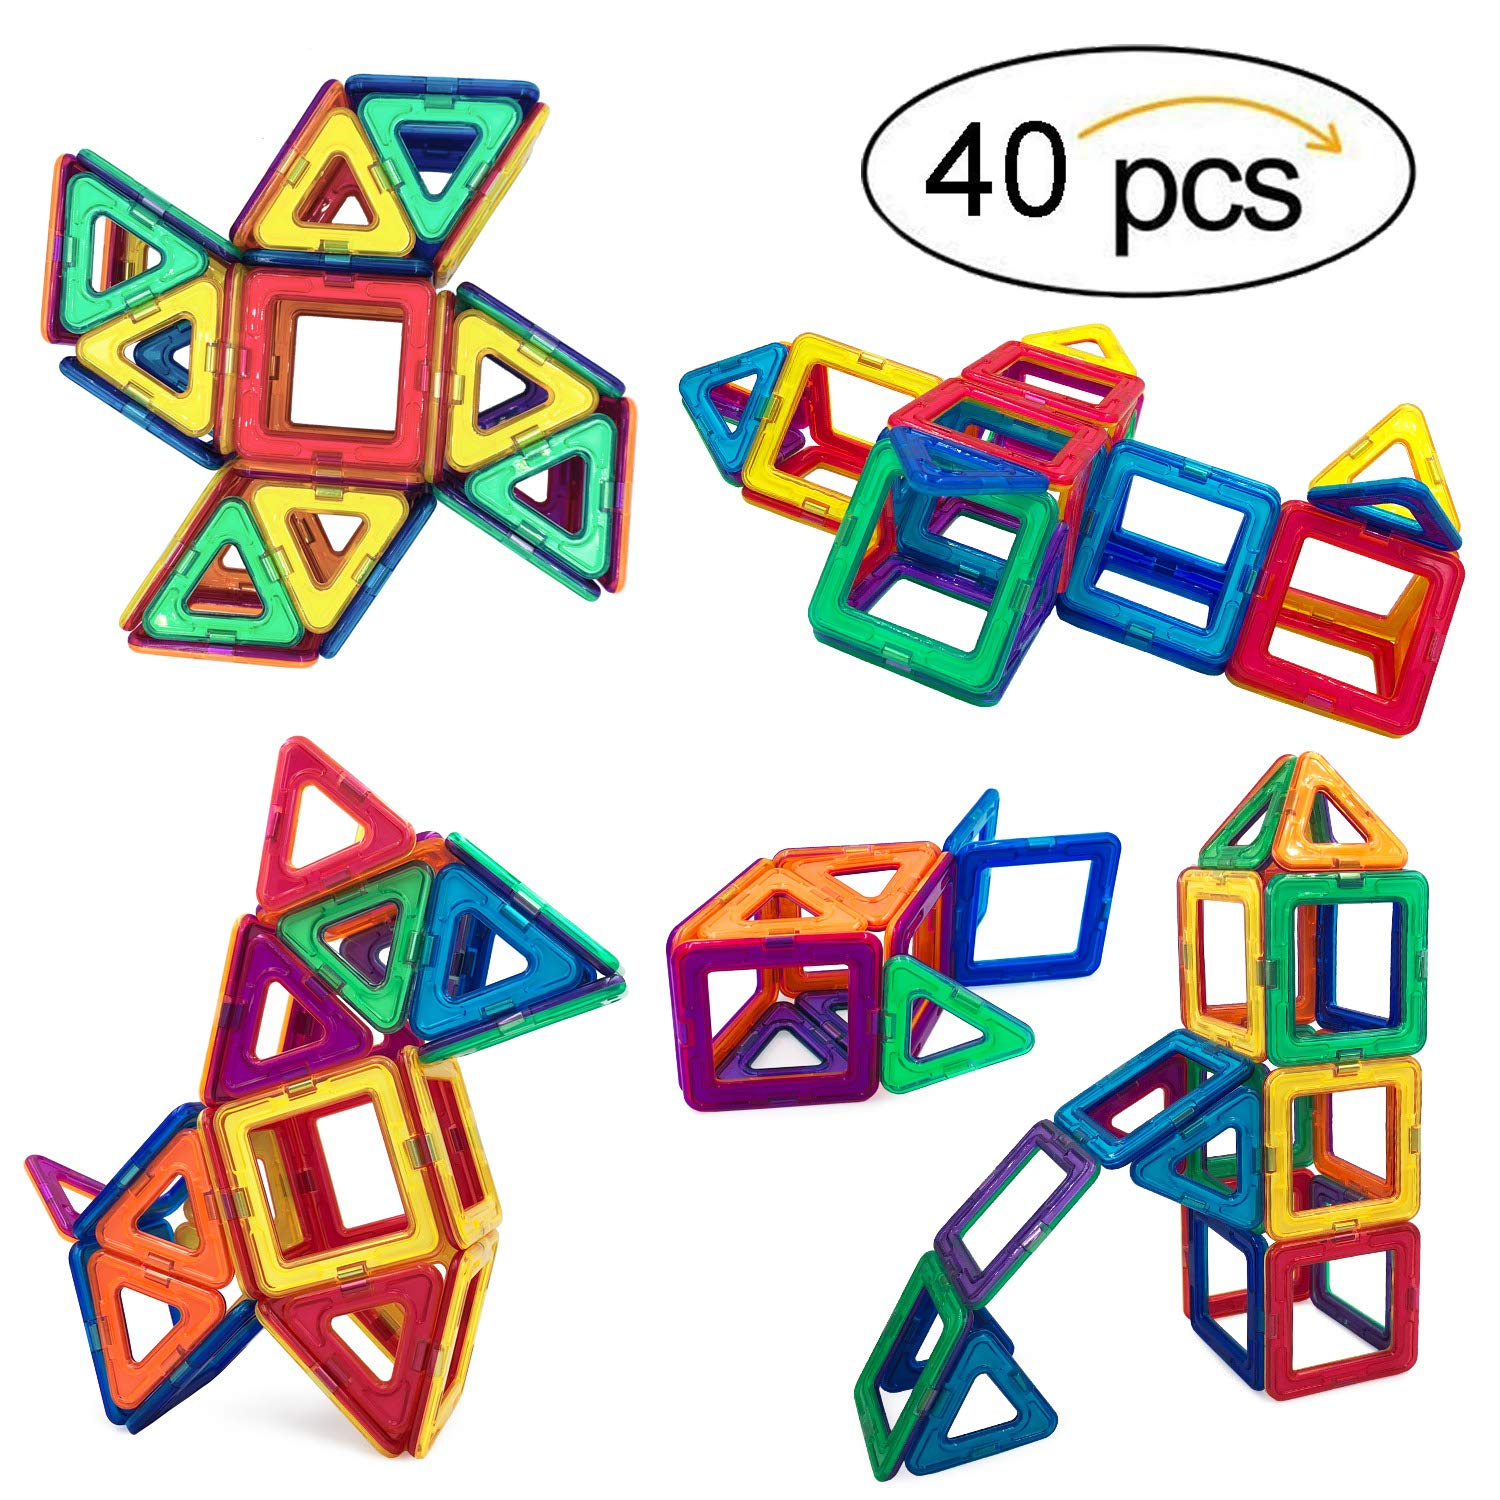 Gepege Magnetic Tiles Building Blocks Toys for Kids, 40 Pcs Preschool Kids Educational Construction Magnet Toys Sets by Gepege